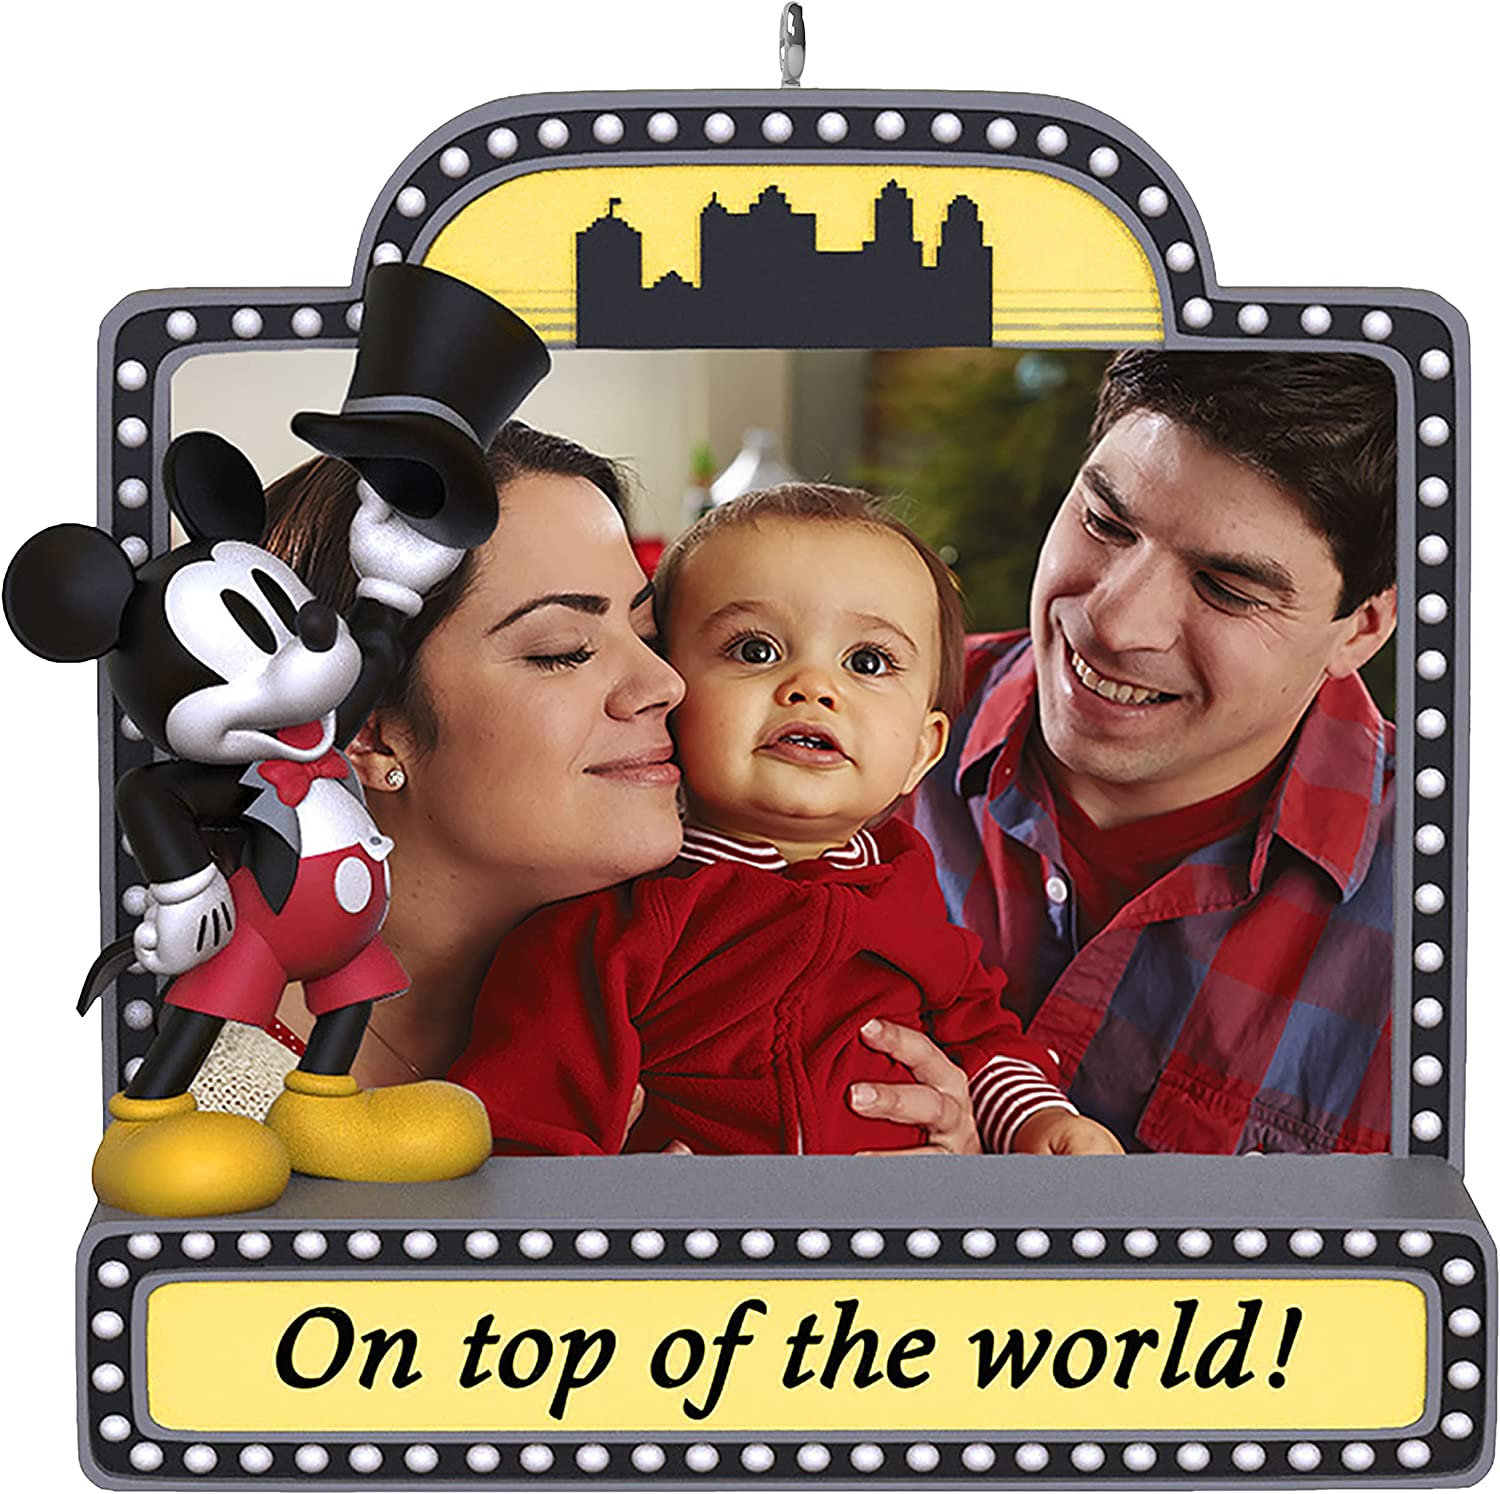 Disney 2021 Christmas Ornament Amazon Com Hallmark Keepsake Christmas Ornament 2021 Disney Mickey Mouse On Top Of The World Marquee Sign Photo Frame Home Kitchen